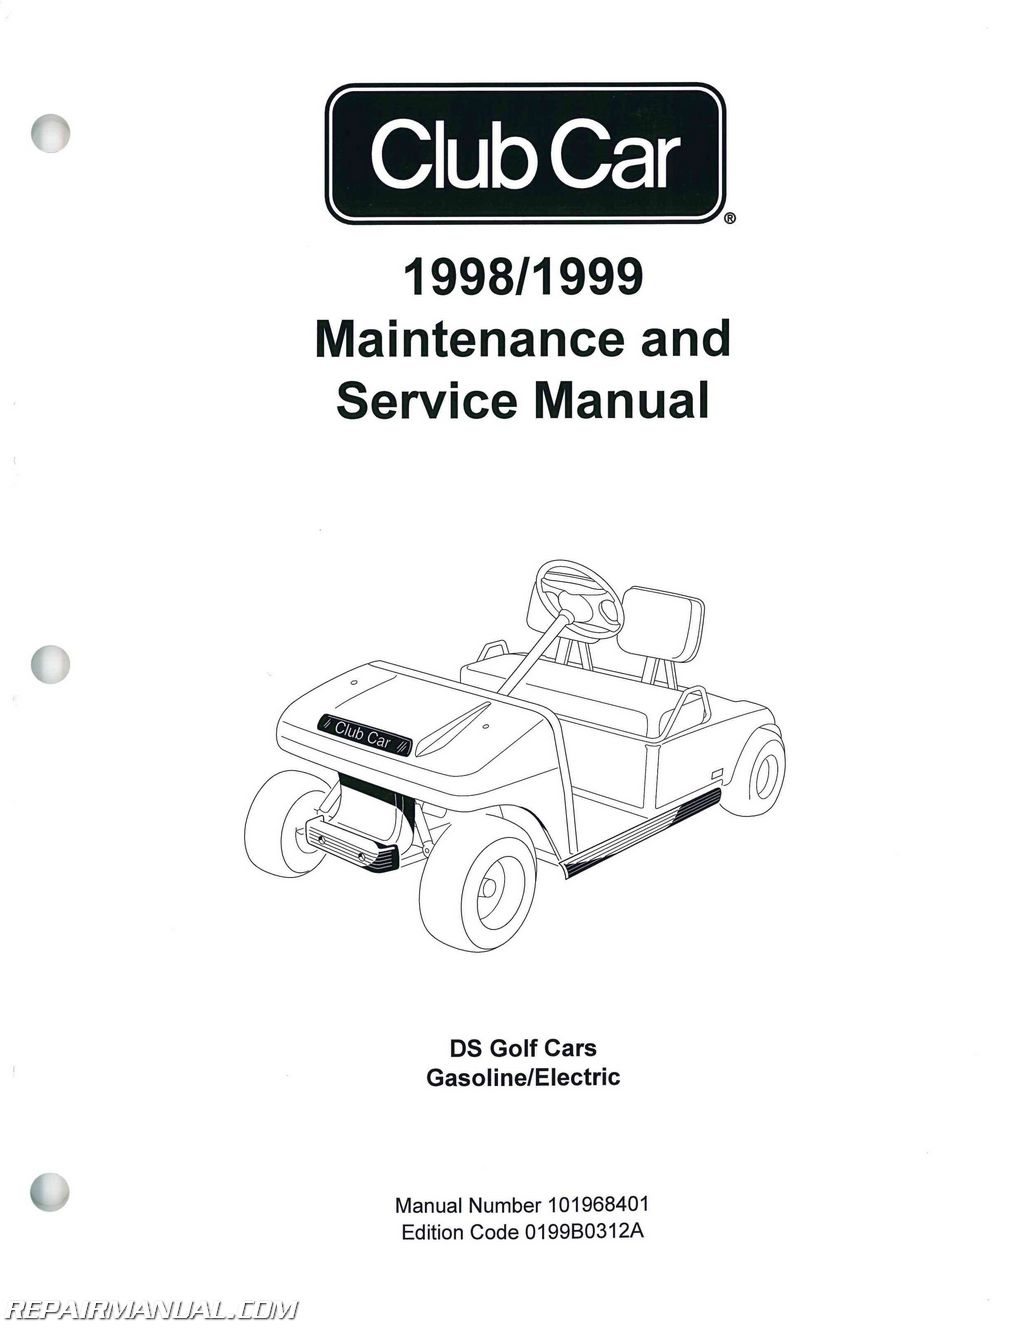 1998 Club Car Carry All Wiring Diagram Books Of Parts Schematic 1999 Ds Golf Service Manual Rh Repairmanual Com